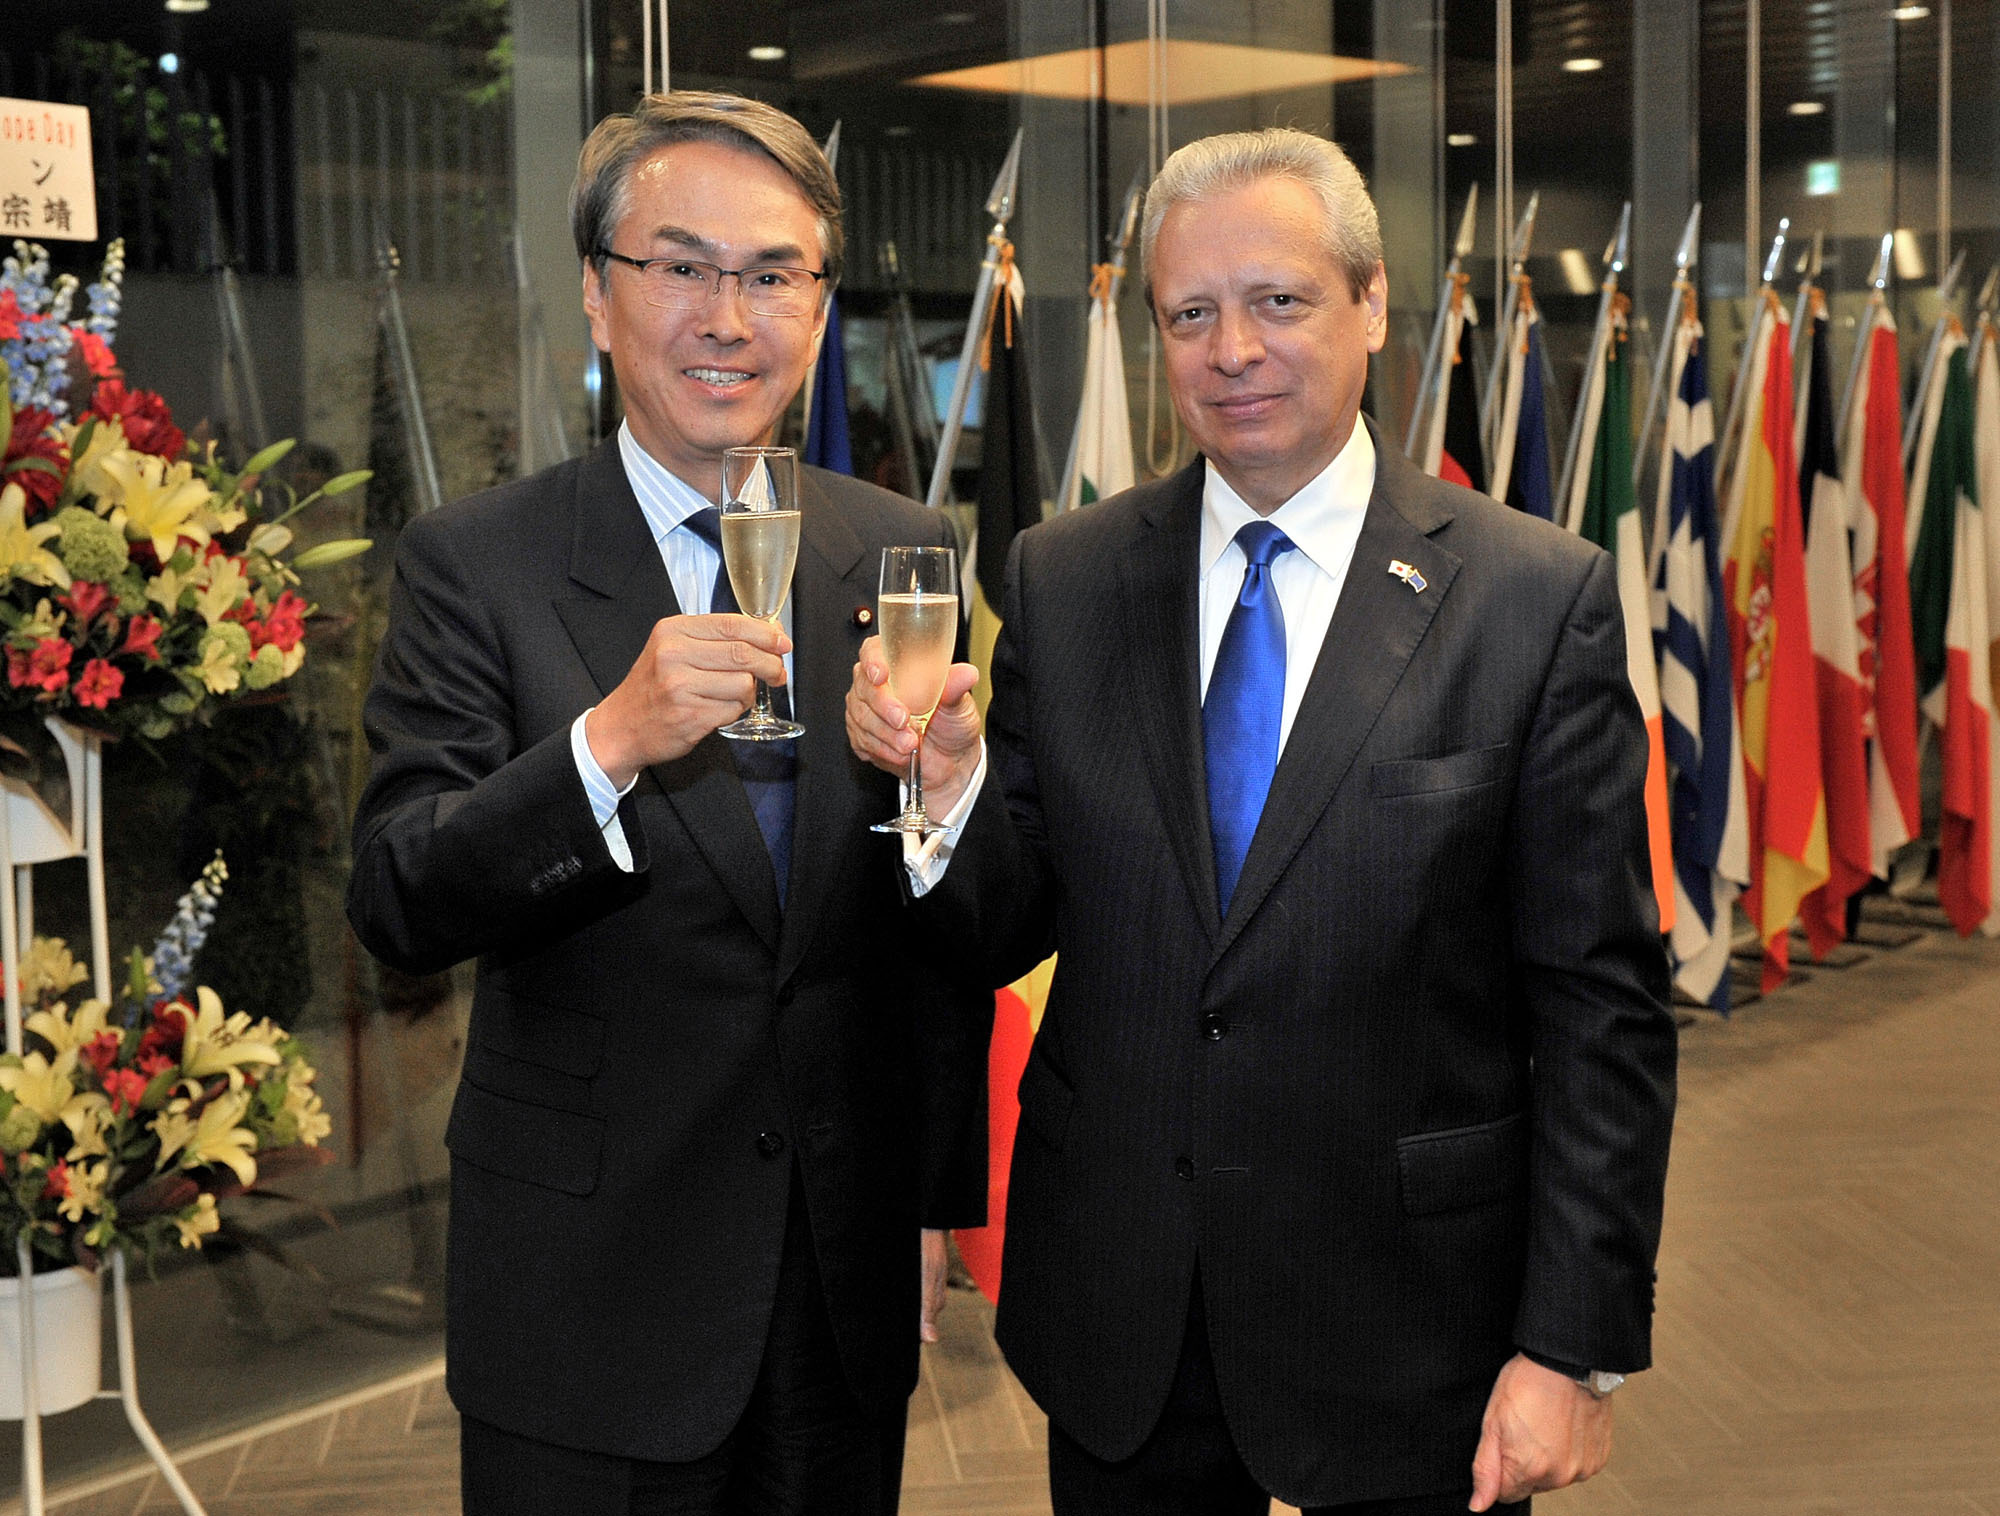 EU Ambassador Viorel Isticioaia-Budura (right) greets Nobuteru Ishihara, minister in charge of economic revitalization and chairman of the EU-Japan Parliamentary League of Friendship, during a reception to mark Europe Day in Tokyo on May 9. |  YOSHIAKI MIURA